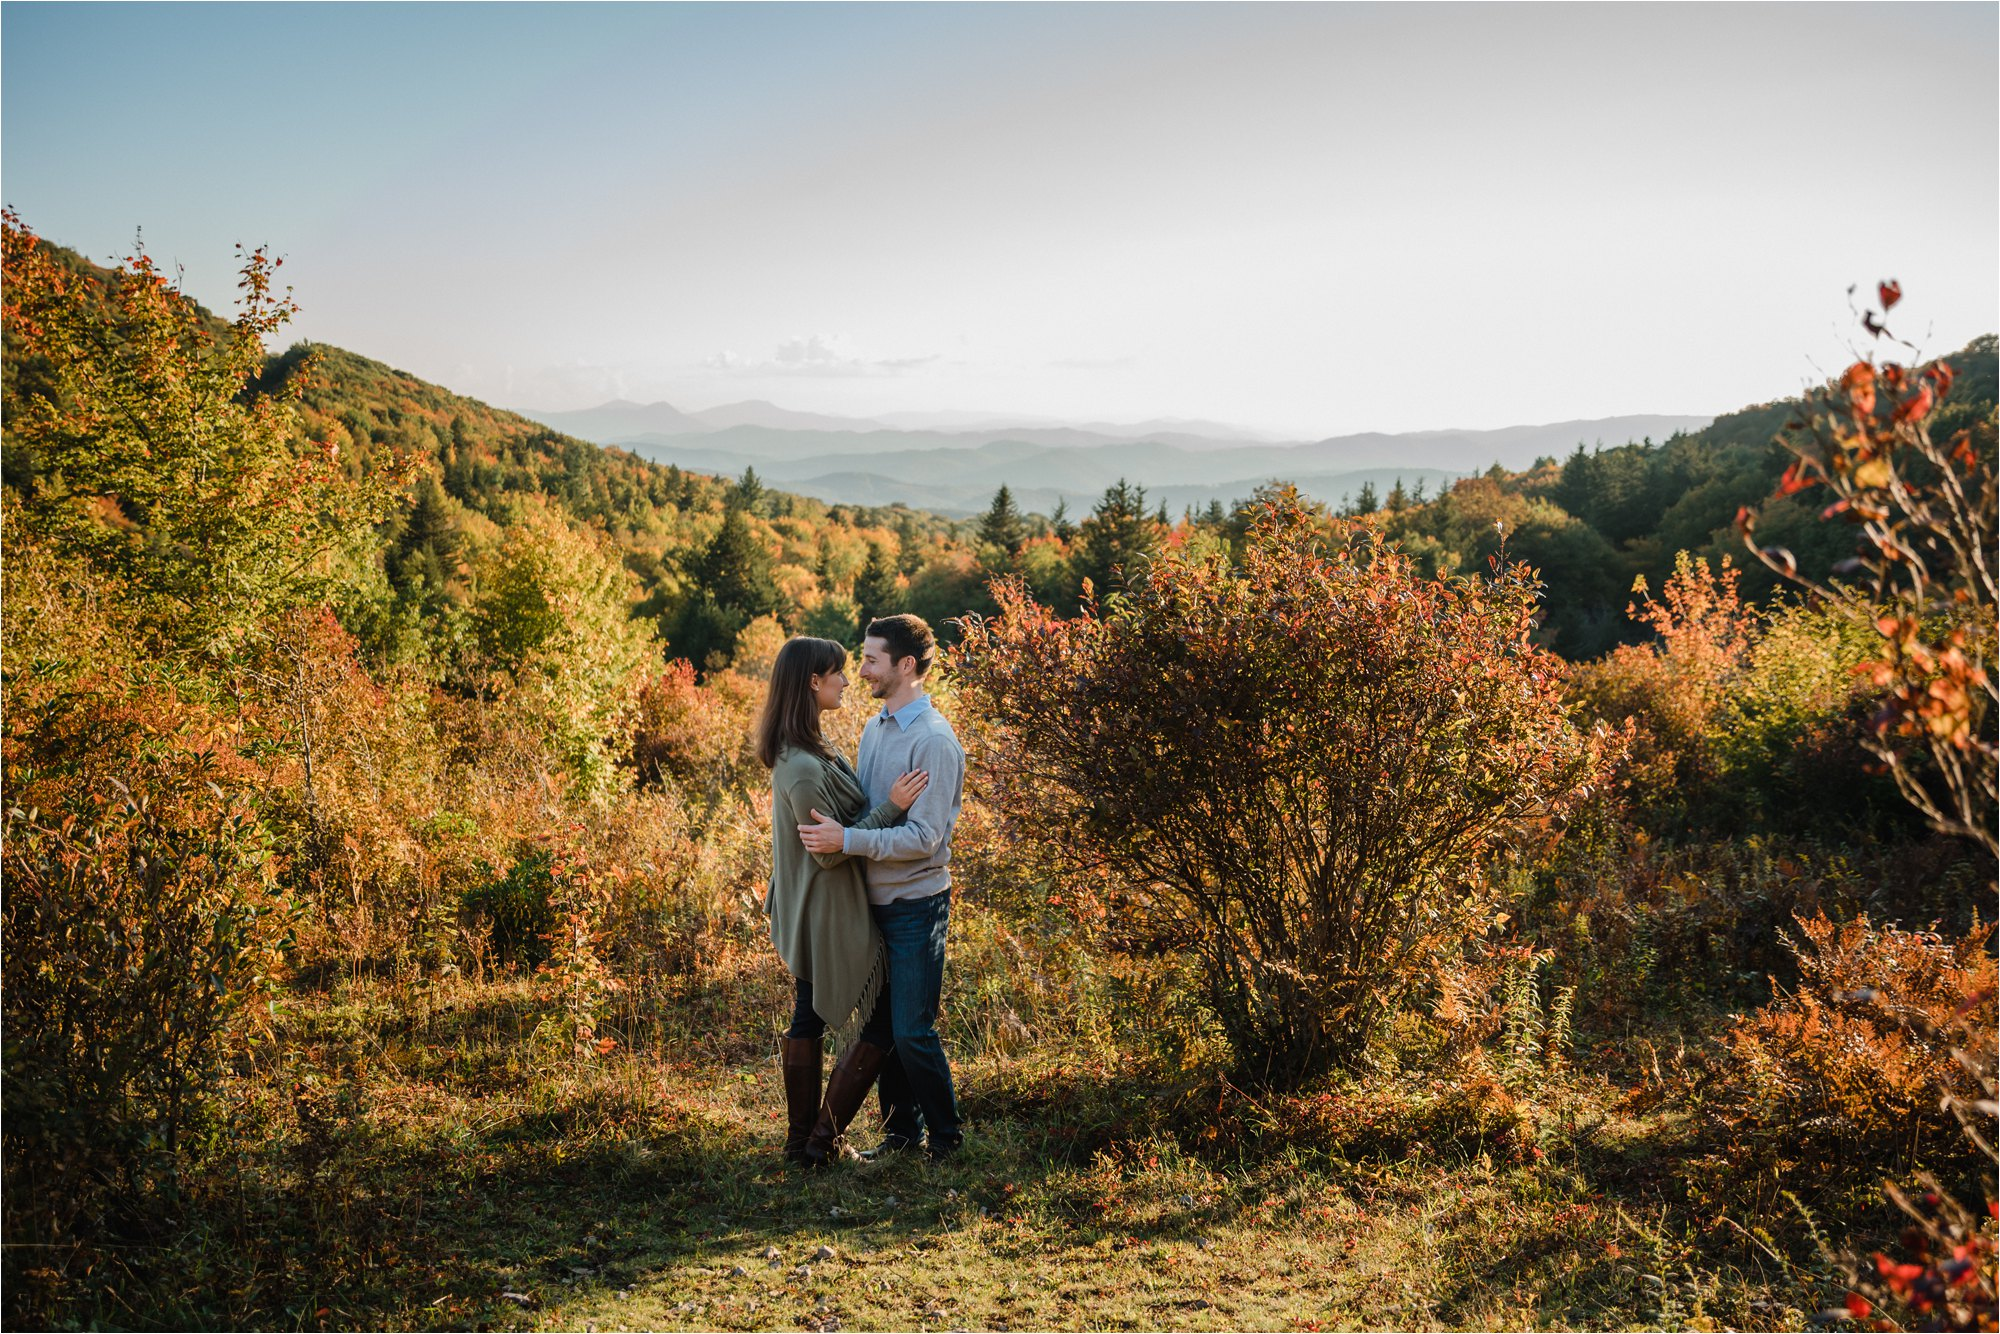 Engagement Photos in Foliage at Blue Ridge Mountains